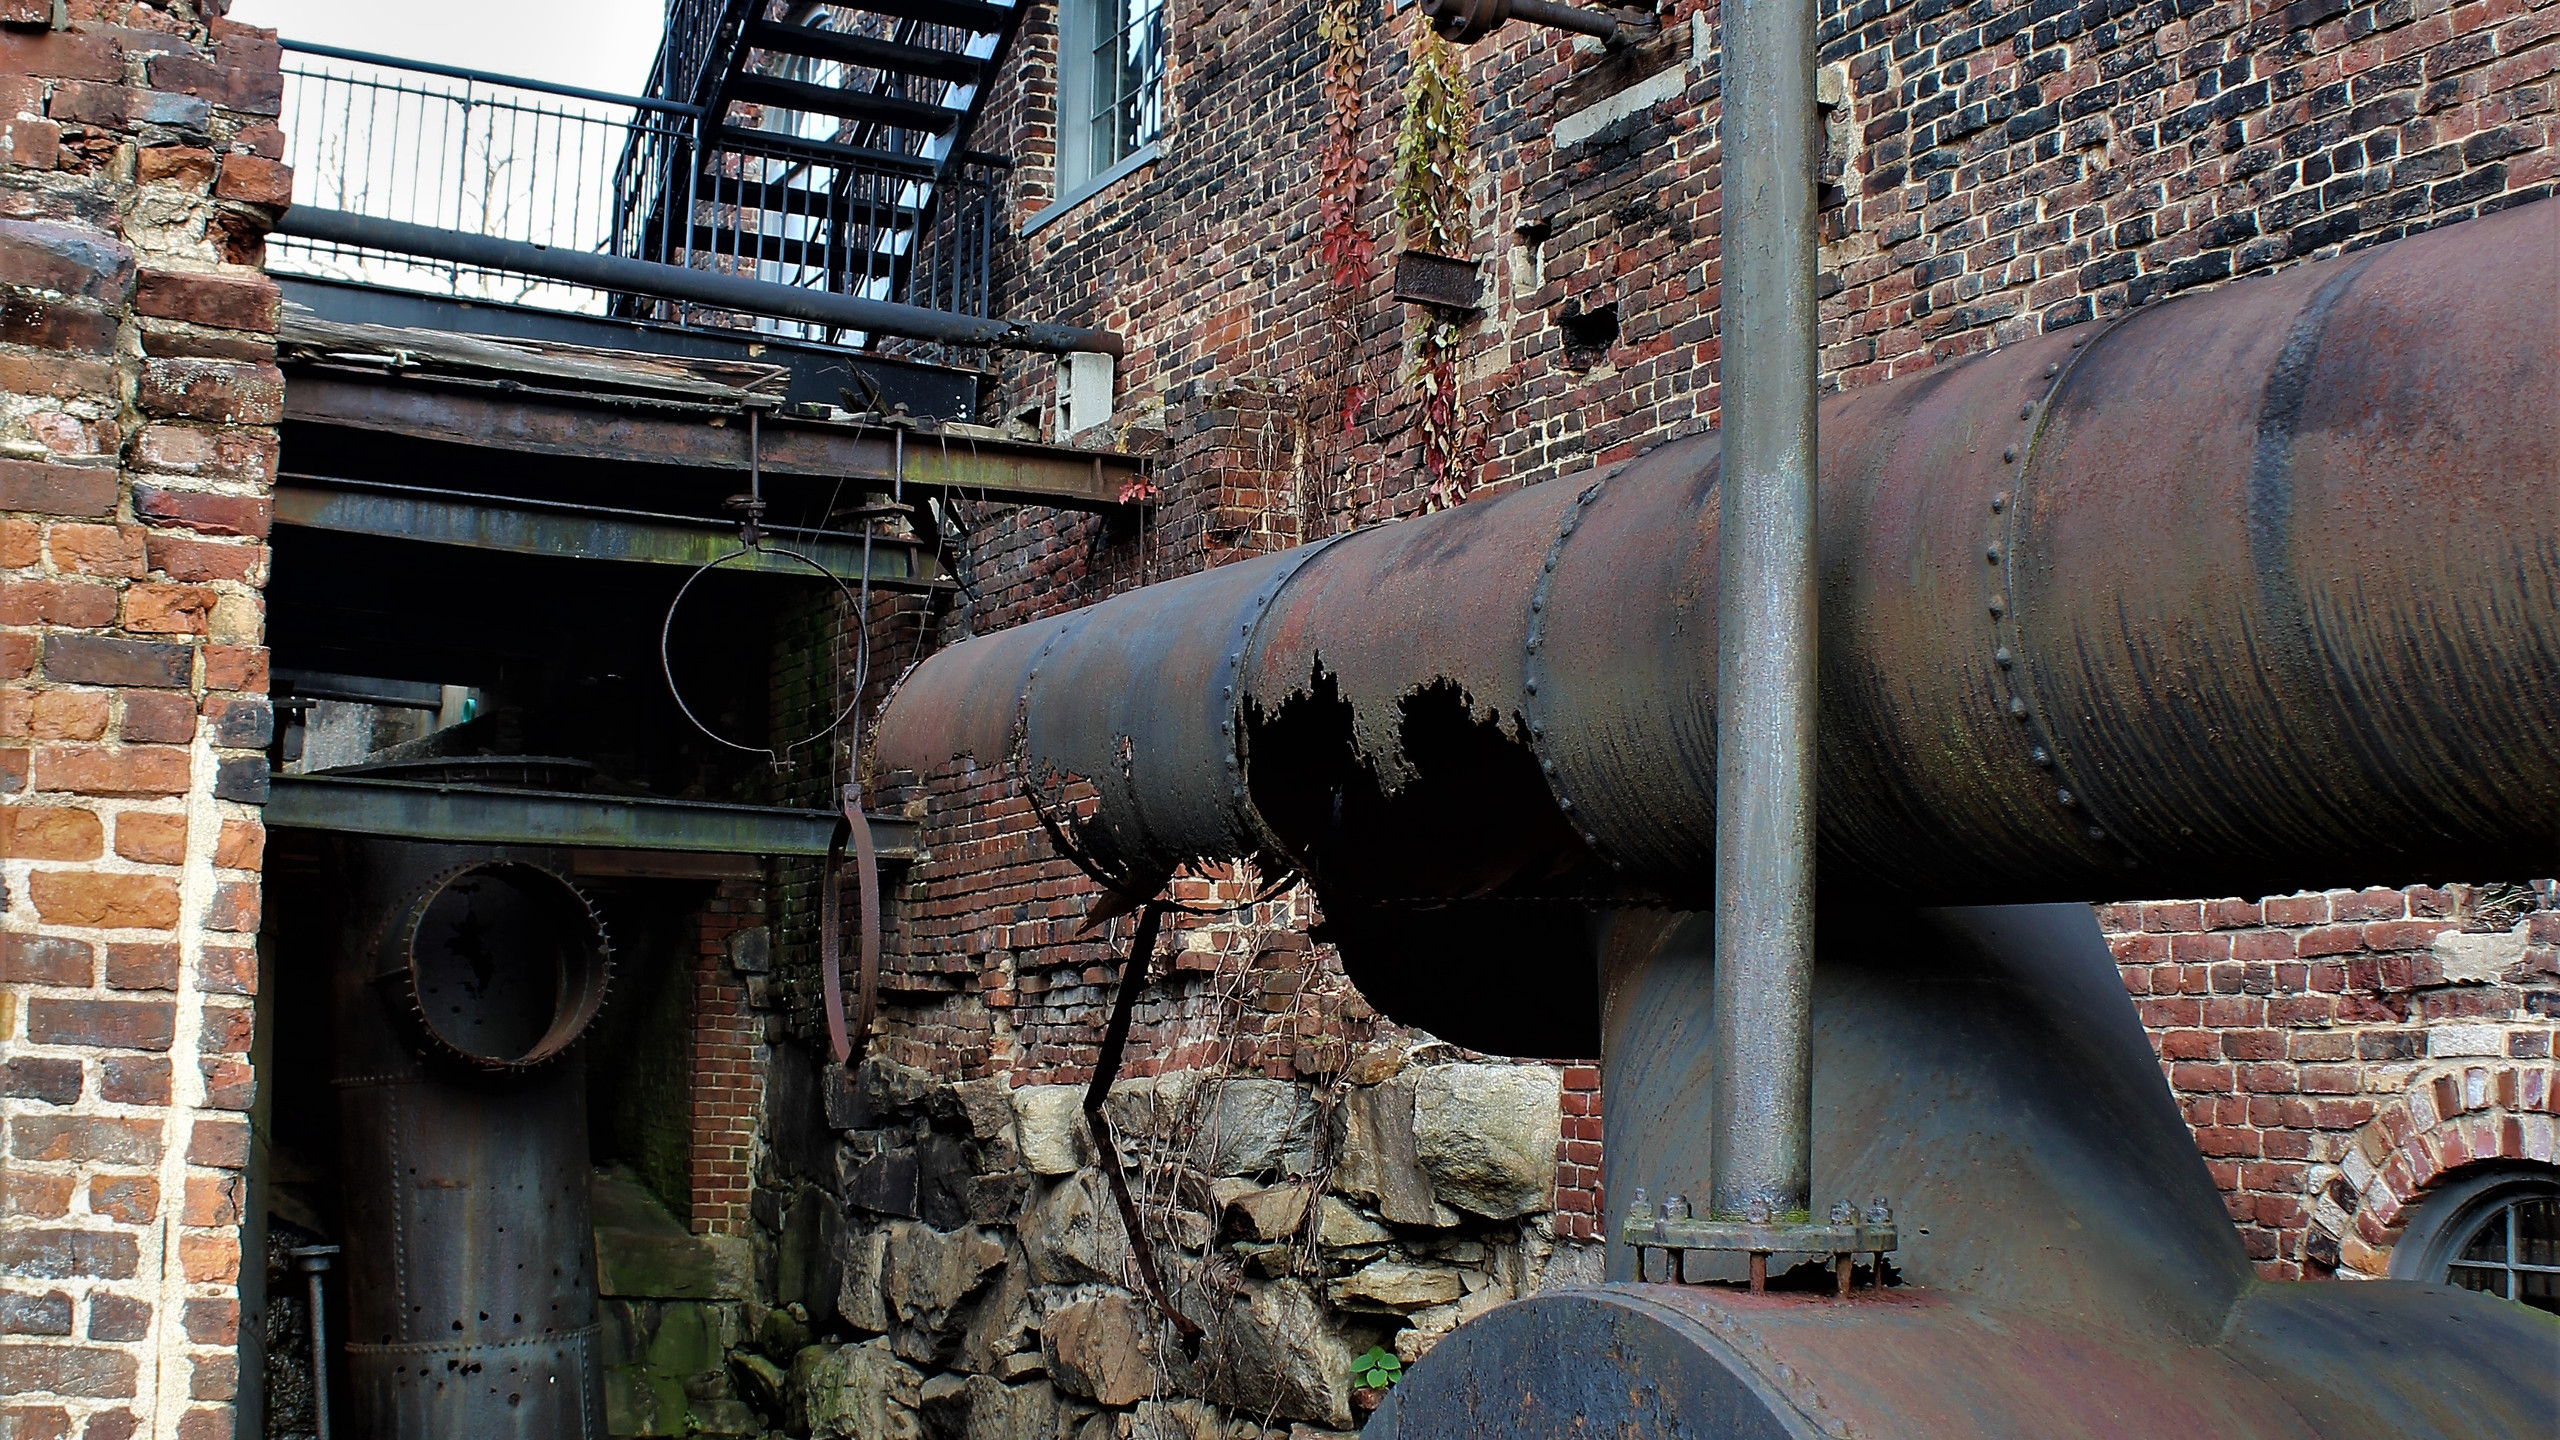 Some of the Old Mill Machinery